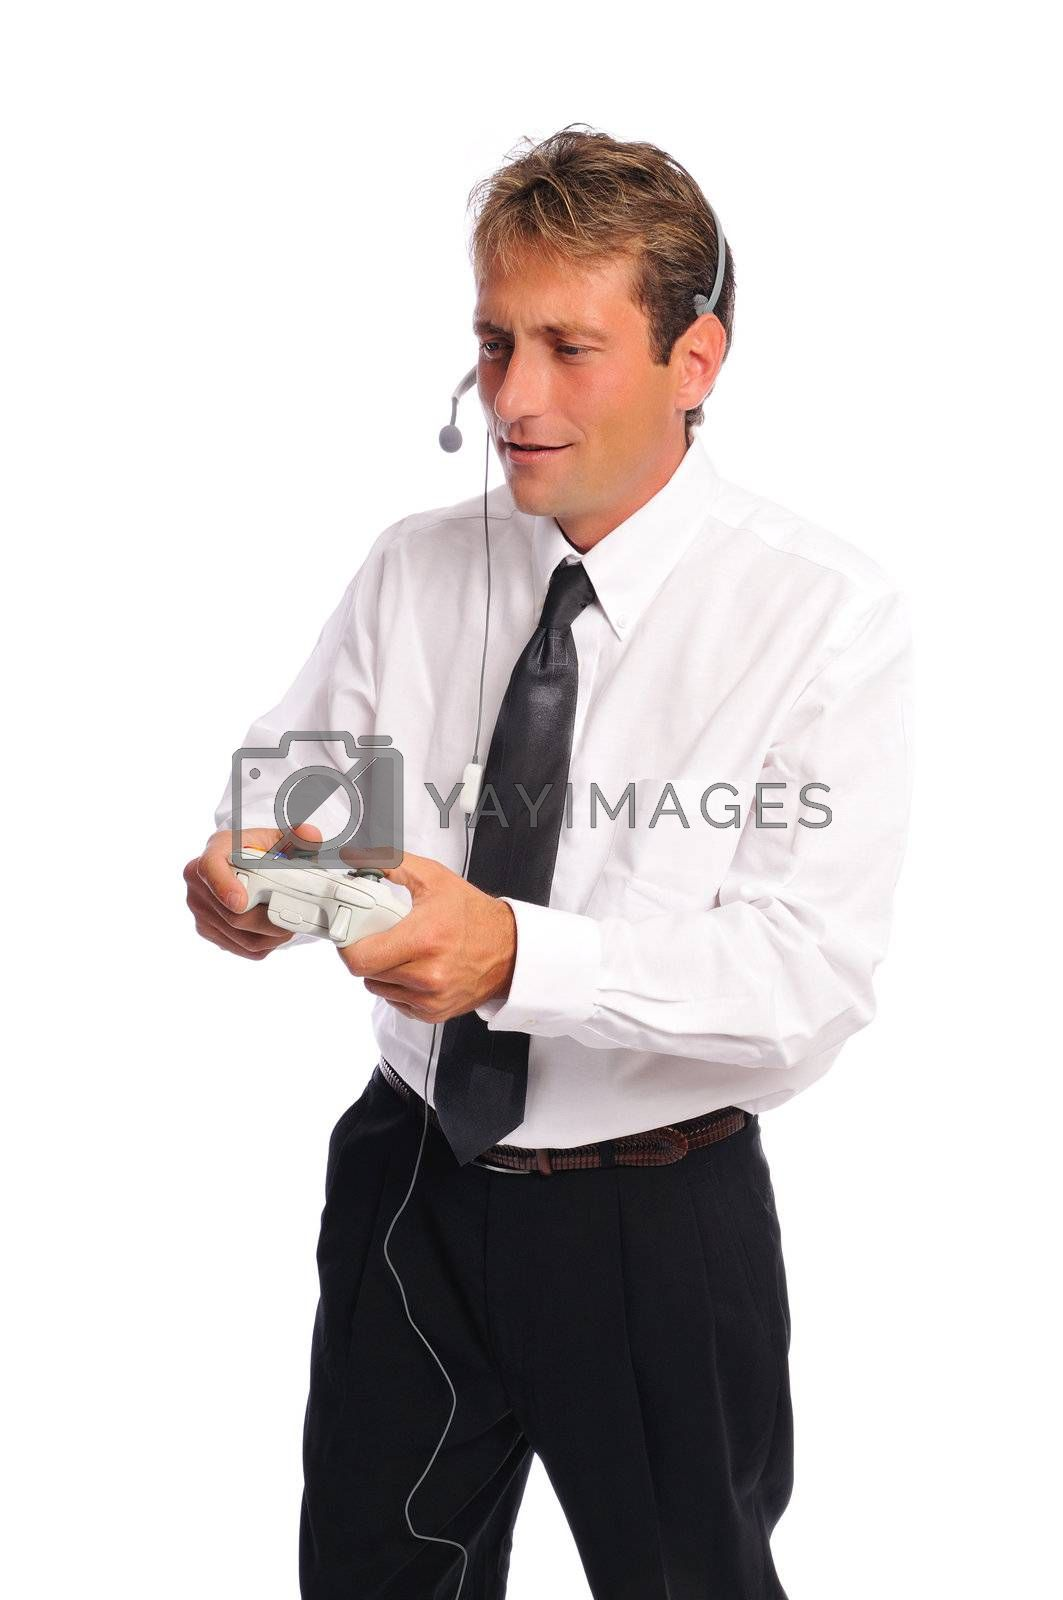 Royalty free image of business gamer by PDImages